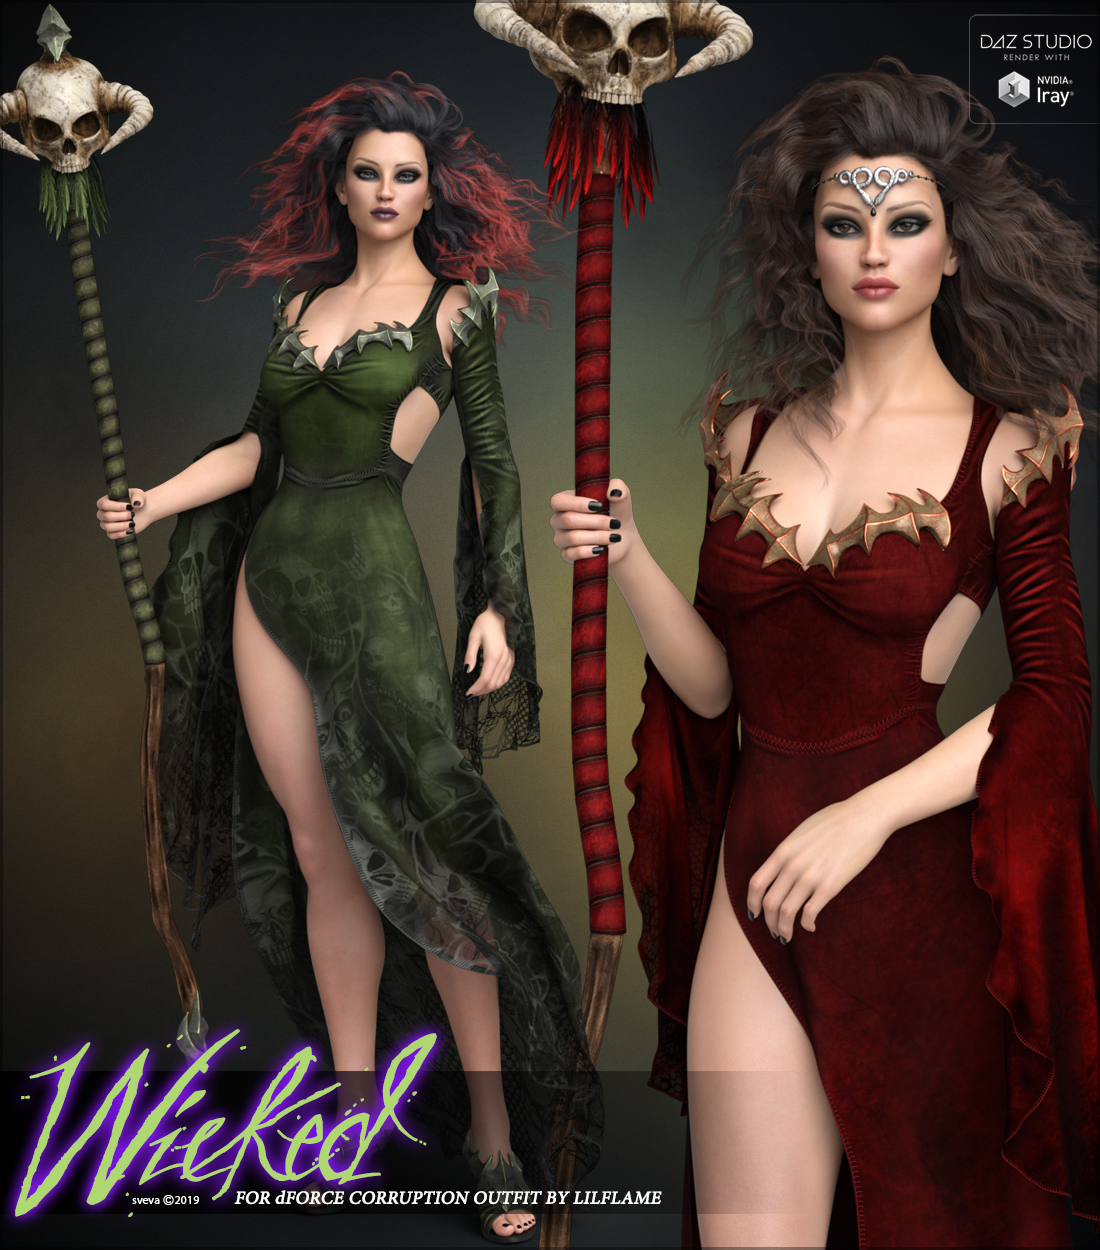 Wicked for dForce Corruption G8F by Sveva